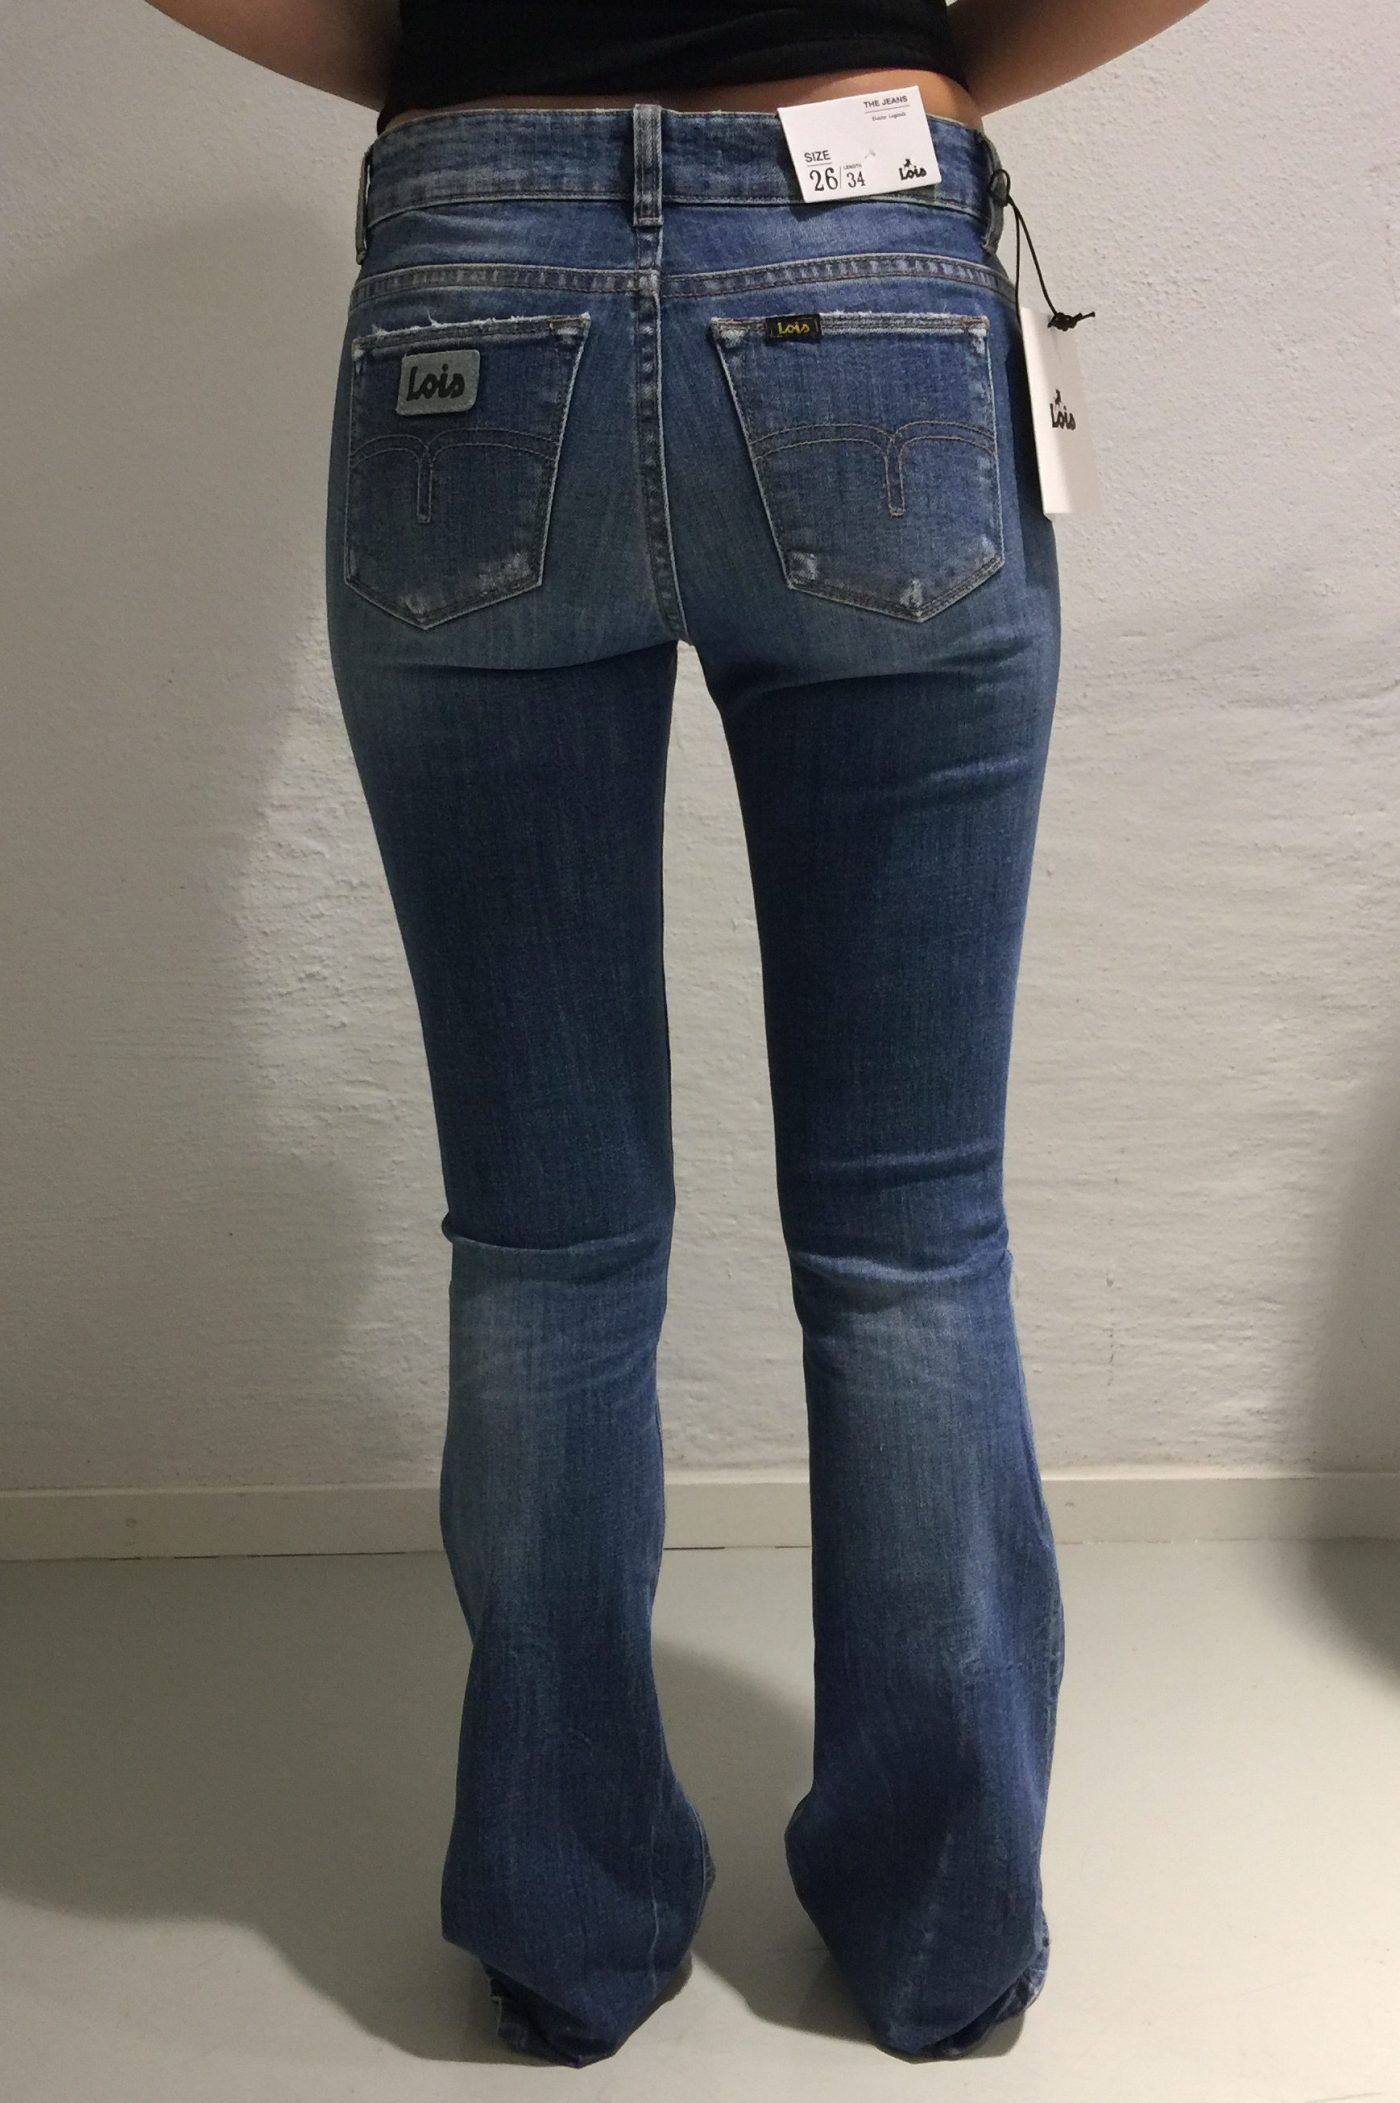 Flare jeans Lois - Melrose-r sonor stone L32 / 2096-5412